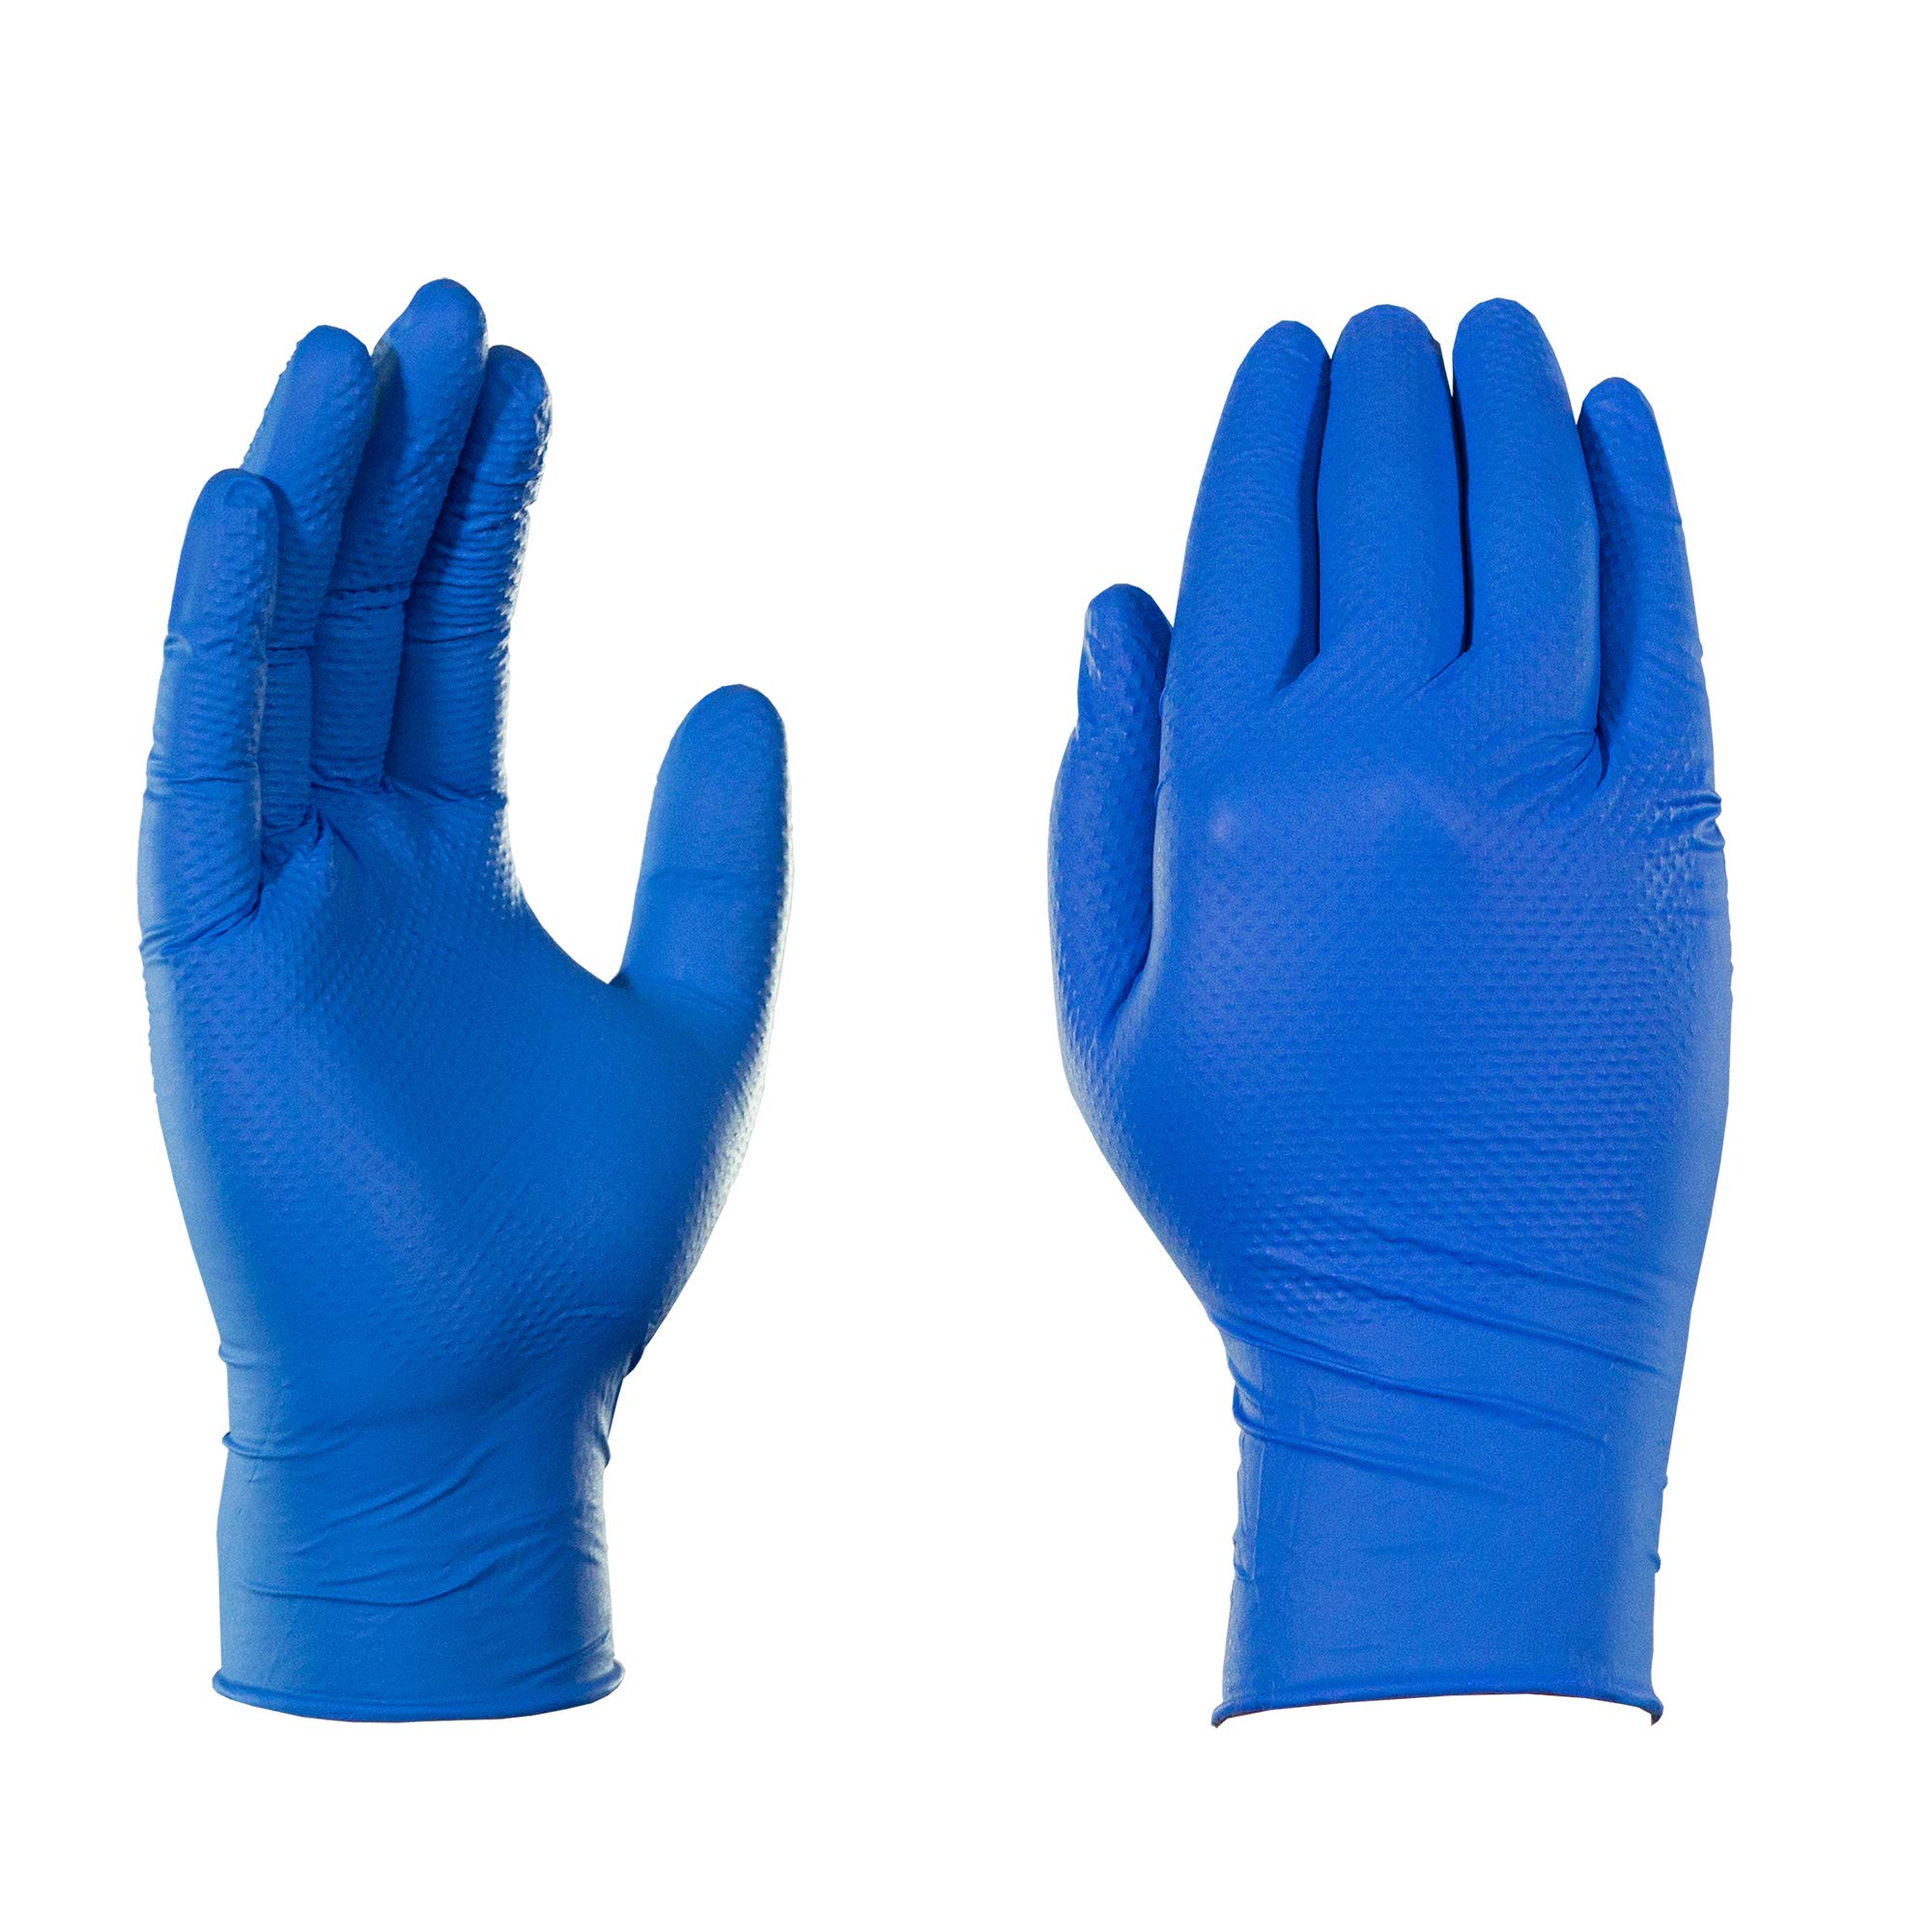 AMMEX - GWRBN49100 - Nitrile Gloves - Gloveworks - HD, Disposable, Powder Free, 6 mil, XXLarge, Royal Blue (Case of 1000) by Ammex (Image #1)